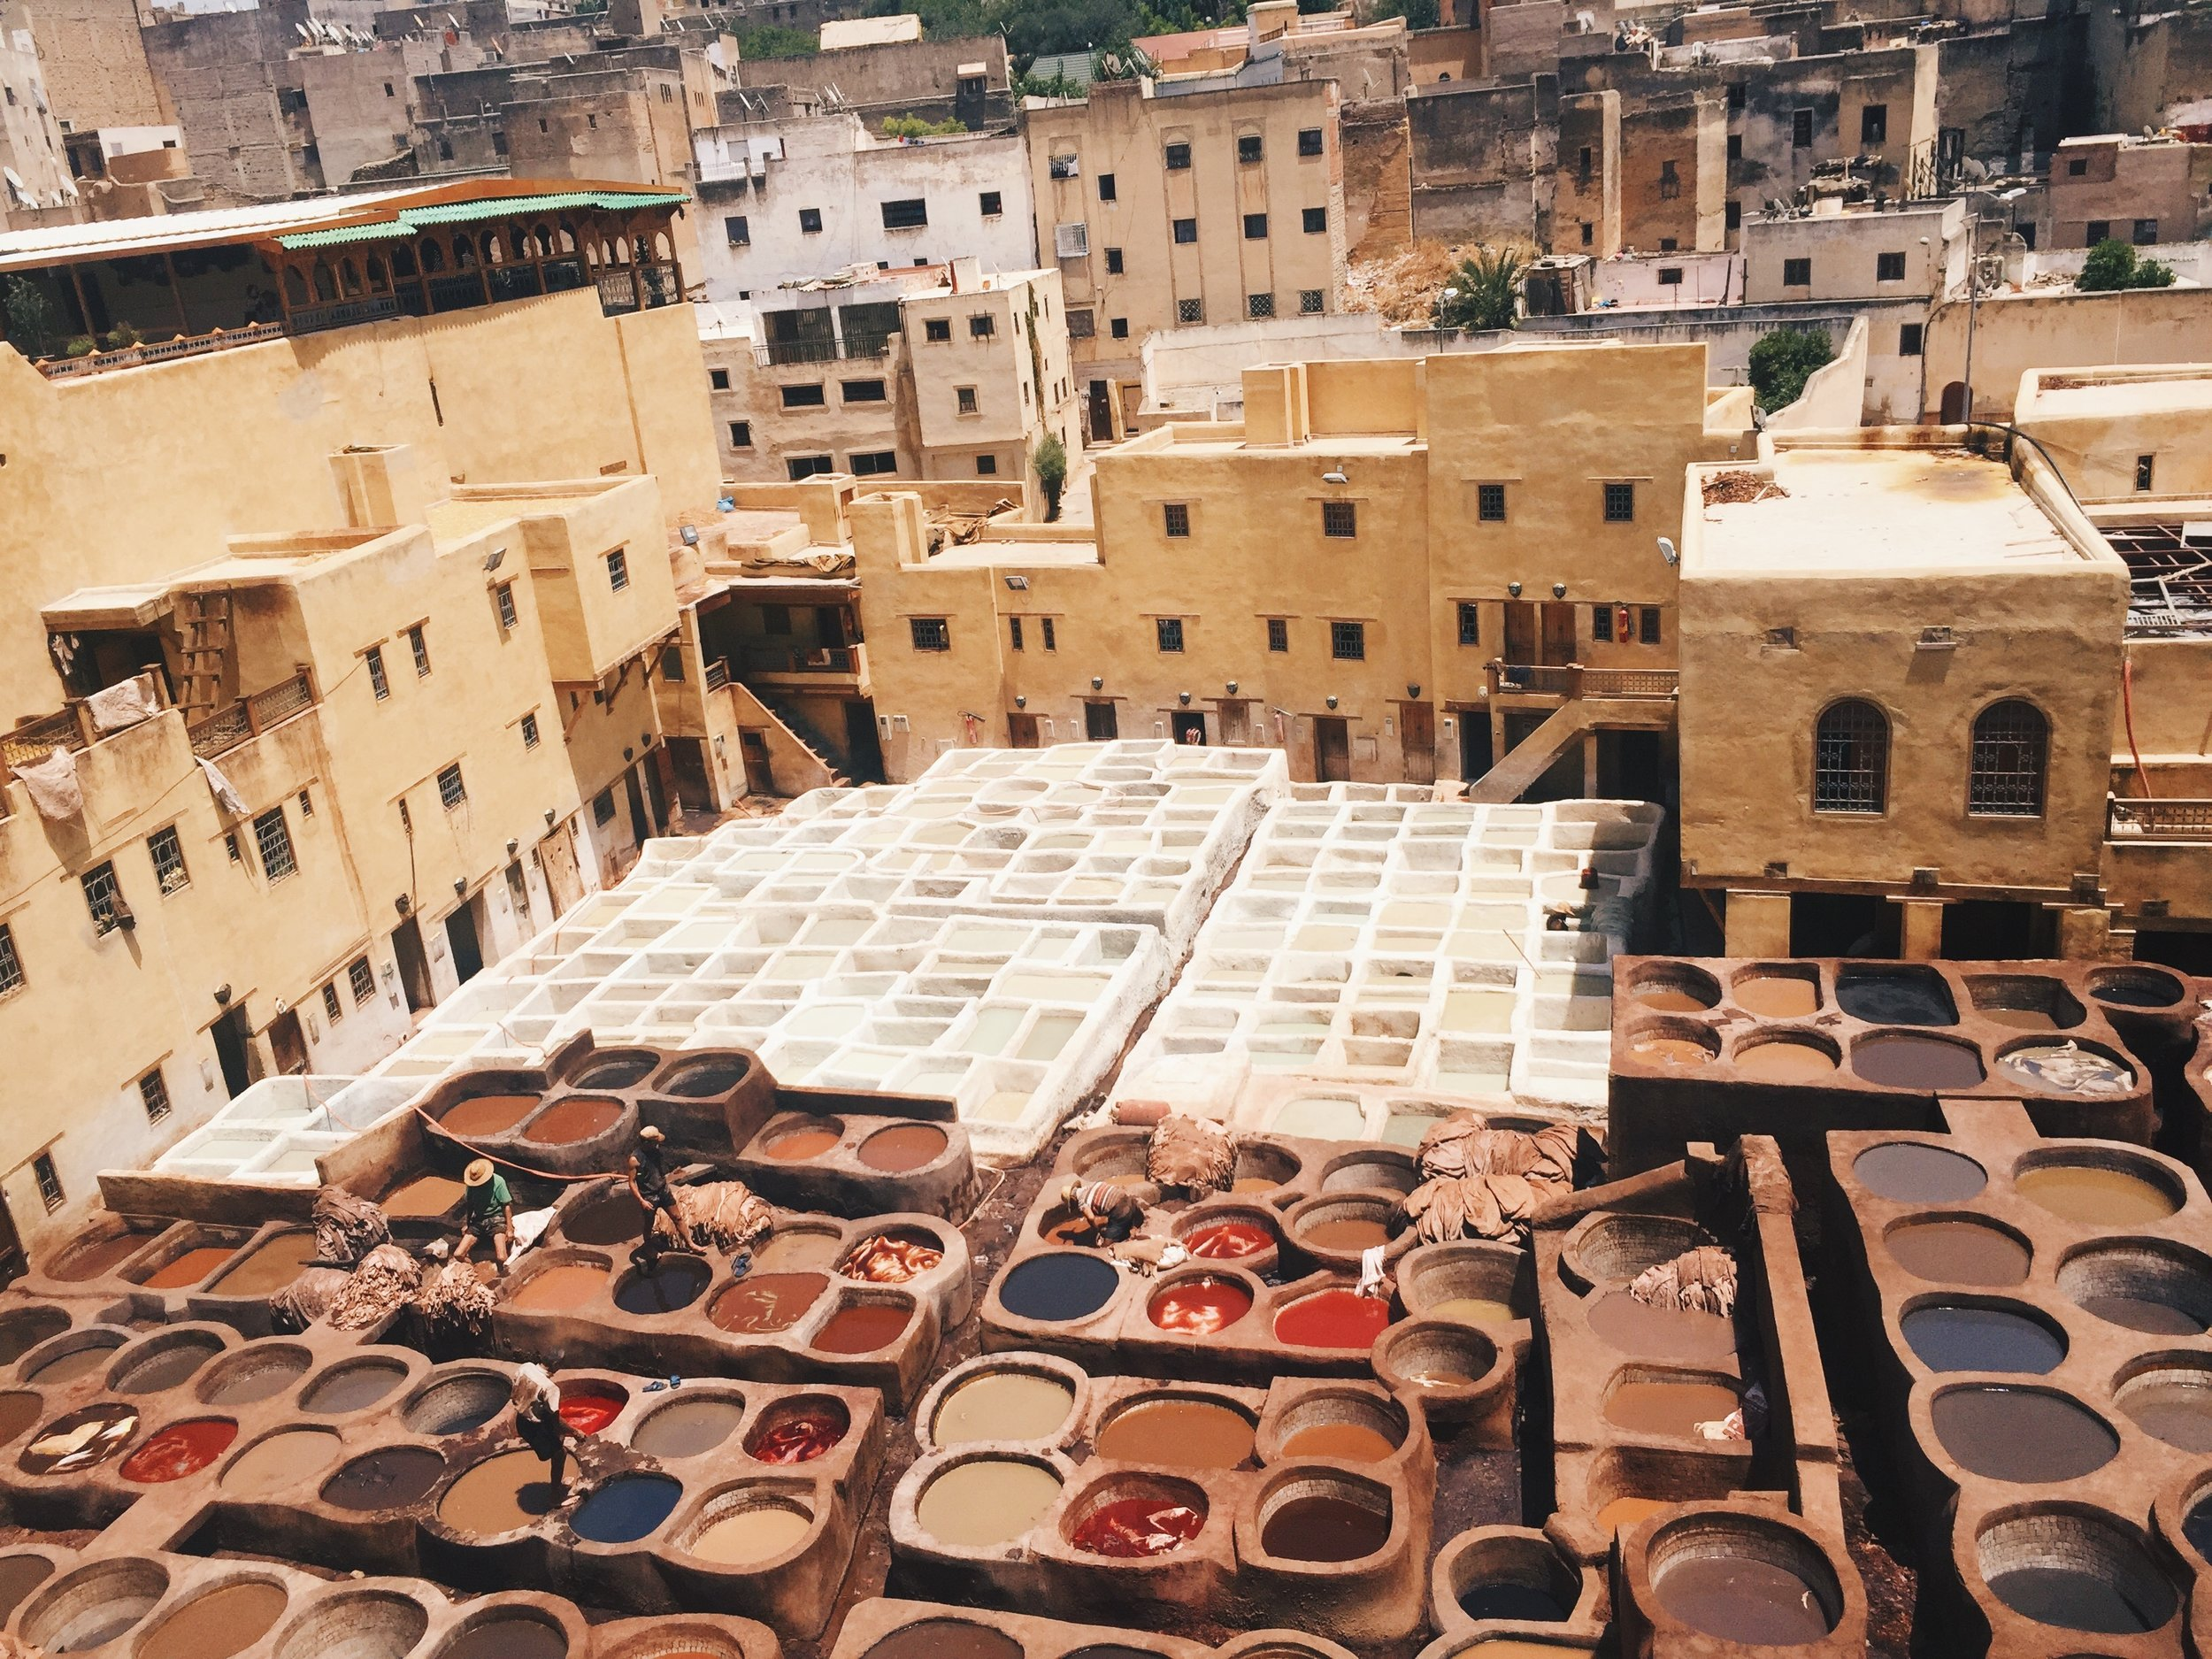 Chouara Tannery in Fes